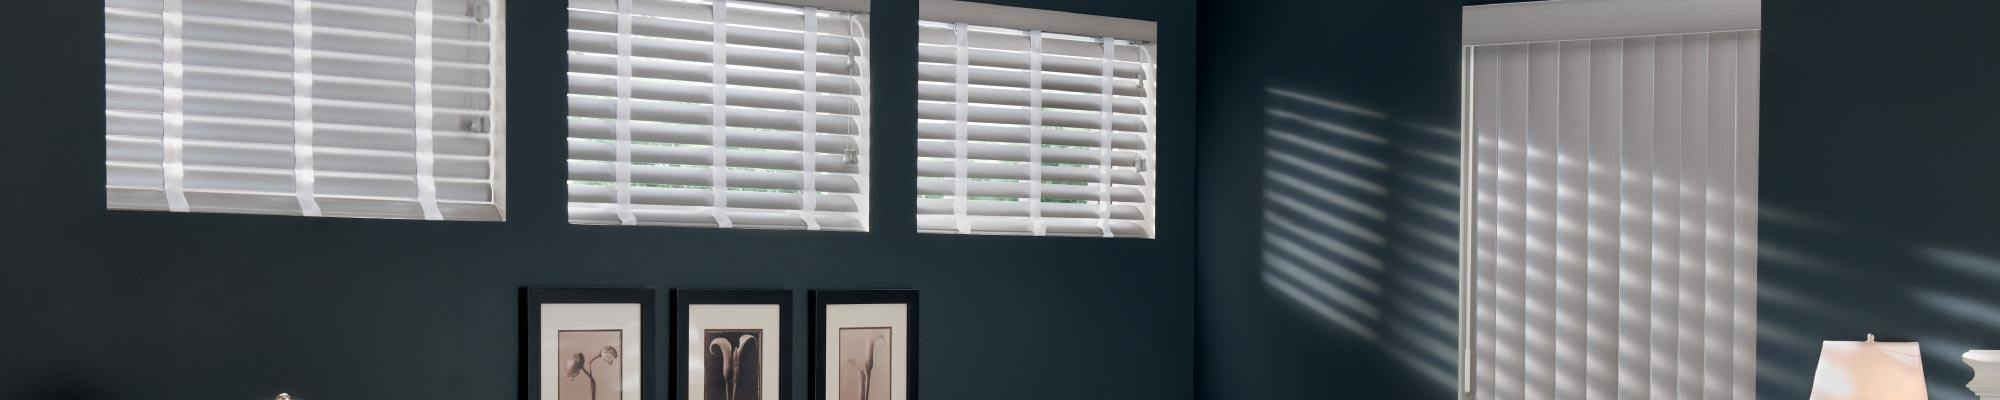 install blinds las vegas nv